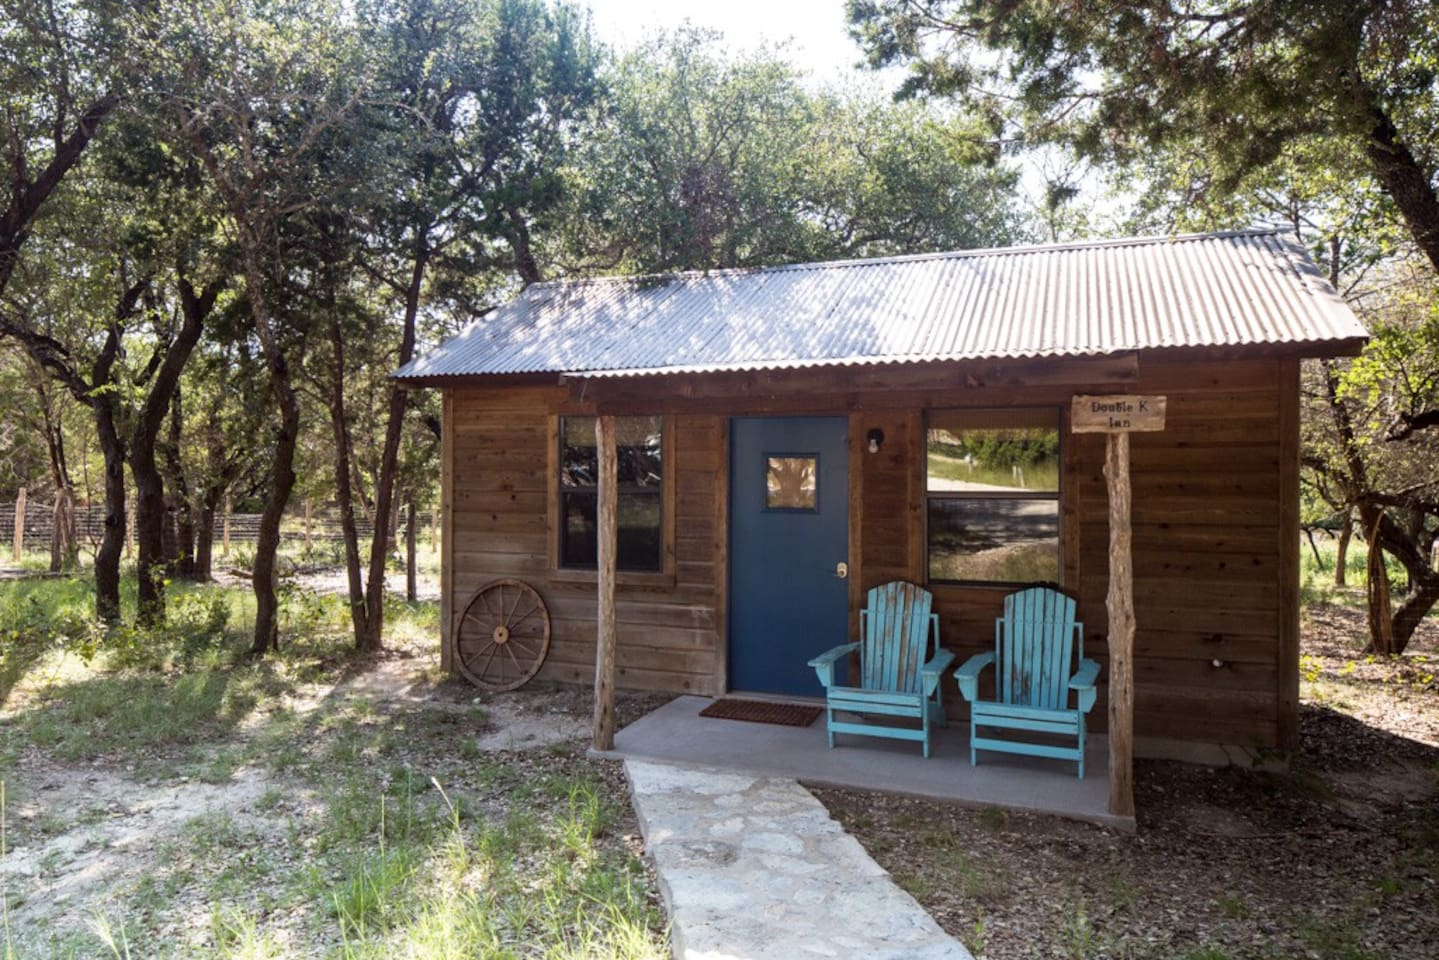 woods found cove well texas cabin pine seasoned been listing near to living the in now country lodgepole austin img some resort amazing getaway has log relocated using this tx cabins tiny